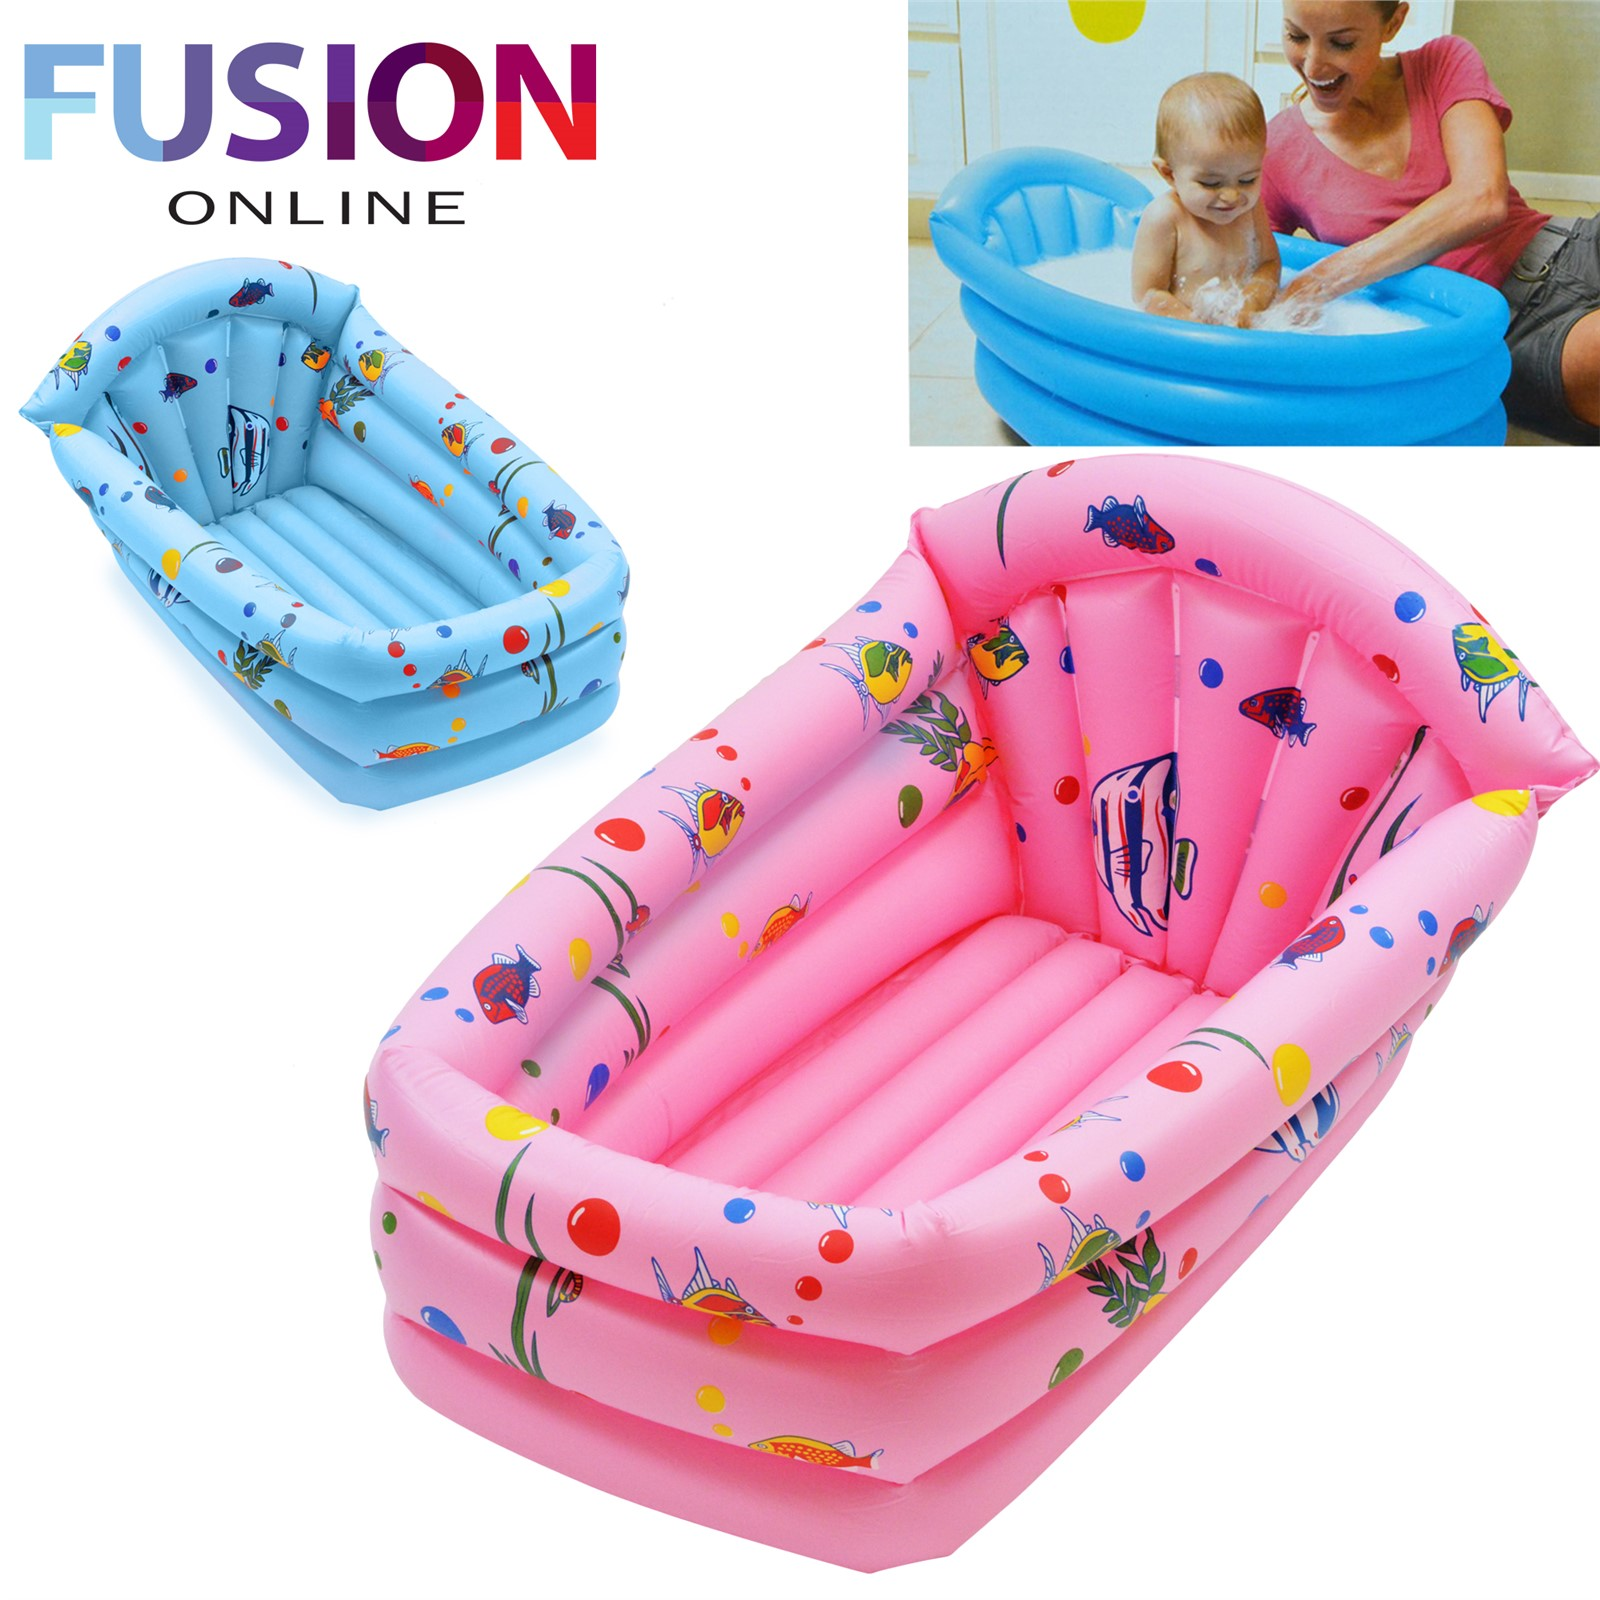 INFLATABLE BABY CHILDRENS KIDS BATH TUB TRAVEL INFANT WASHING WASH ...